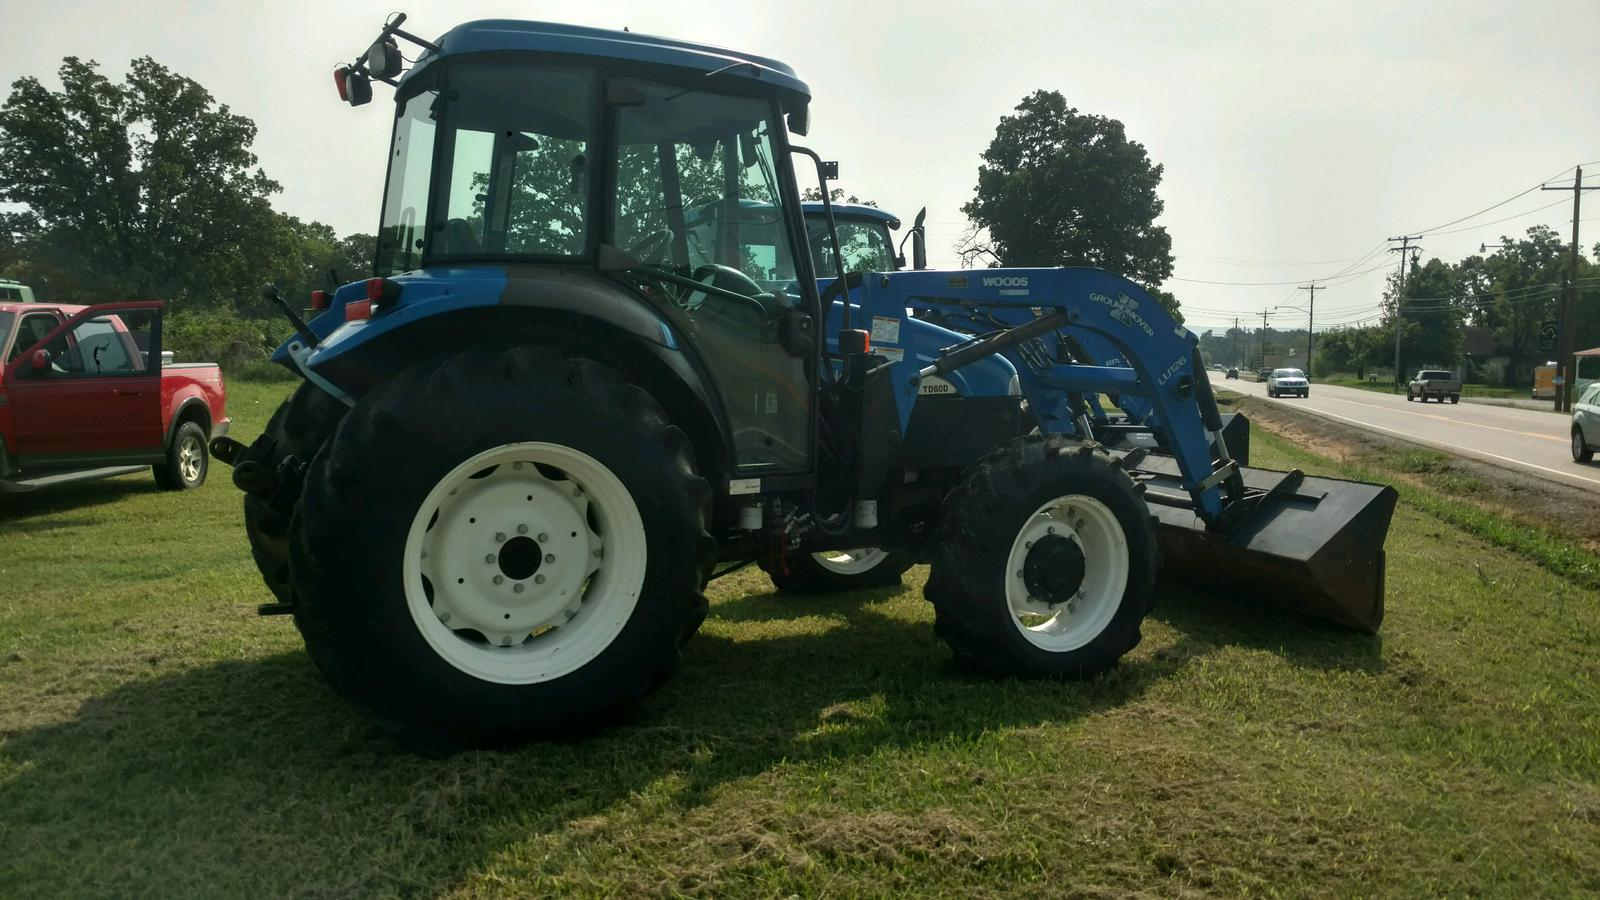 2008 New Holland Agriculture Td80d For Sale In Mountain View Ar Bushing Kw Mcclung Ford And Equipment 870 269 3866